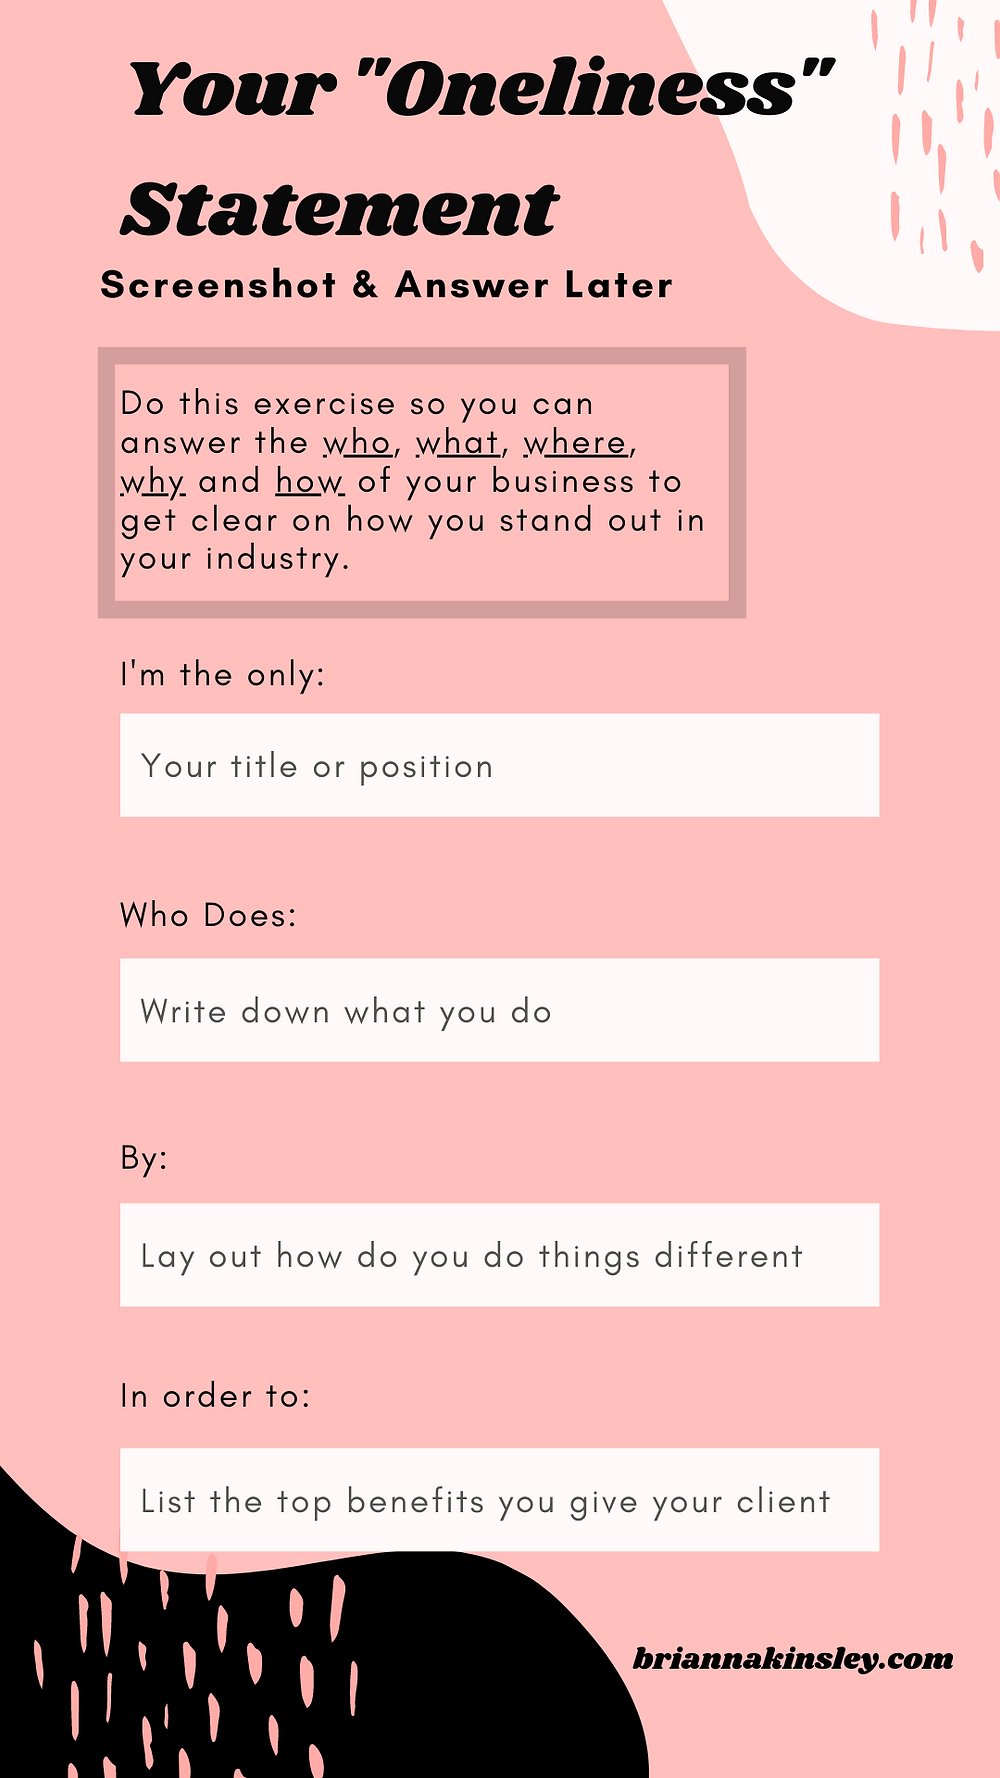 Oneliness Statement Template By Brianna Kinsley Photography